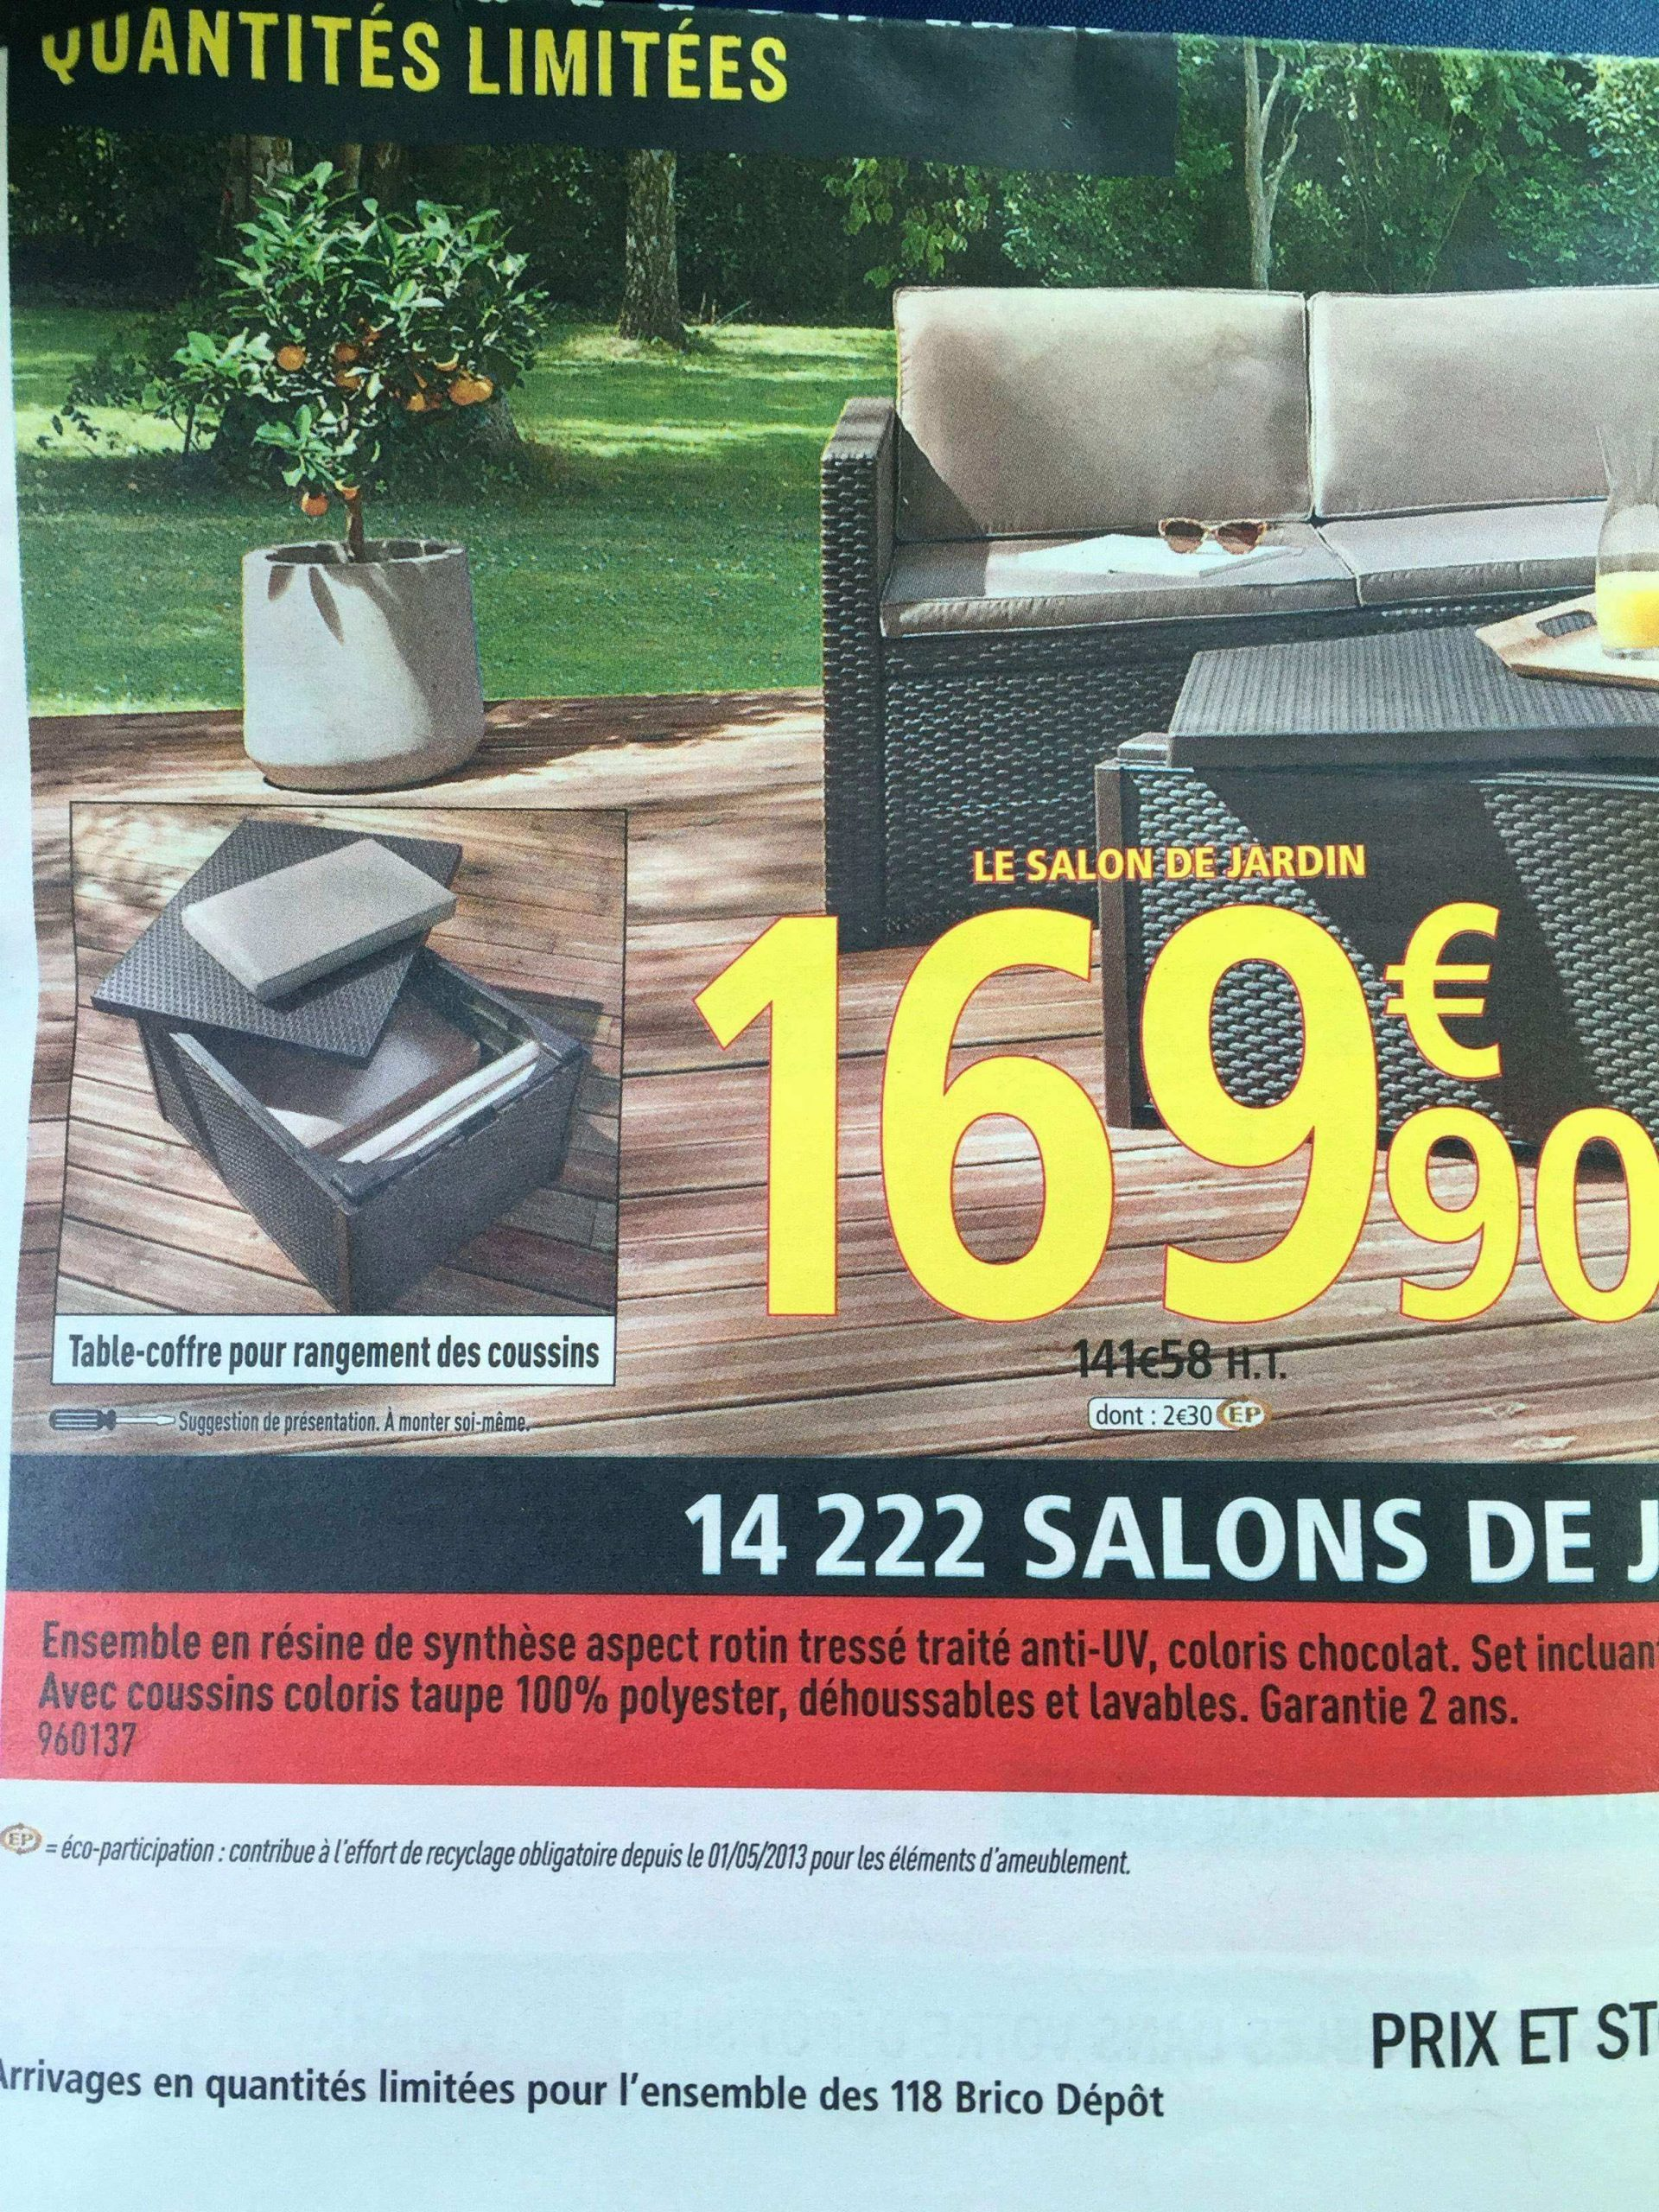 Unique Promo Salon De Jardin Brico Depot | Salon De Jardin ... destiné Salon De Jardin Brico Depot